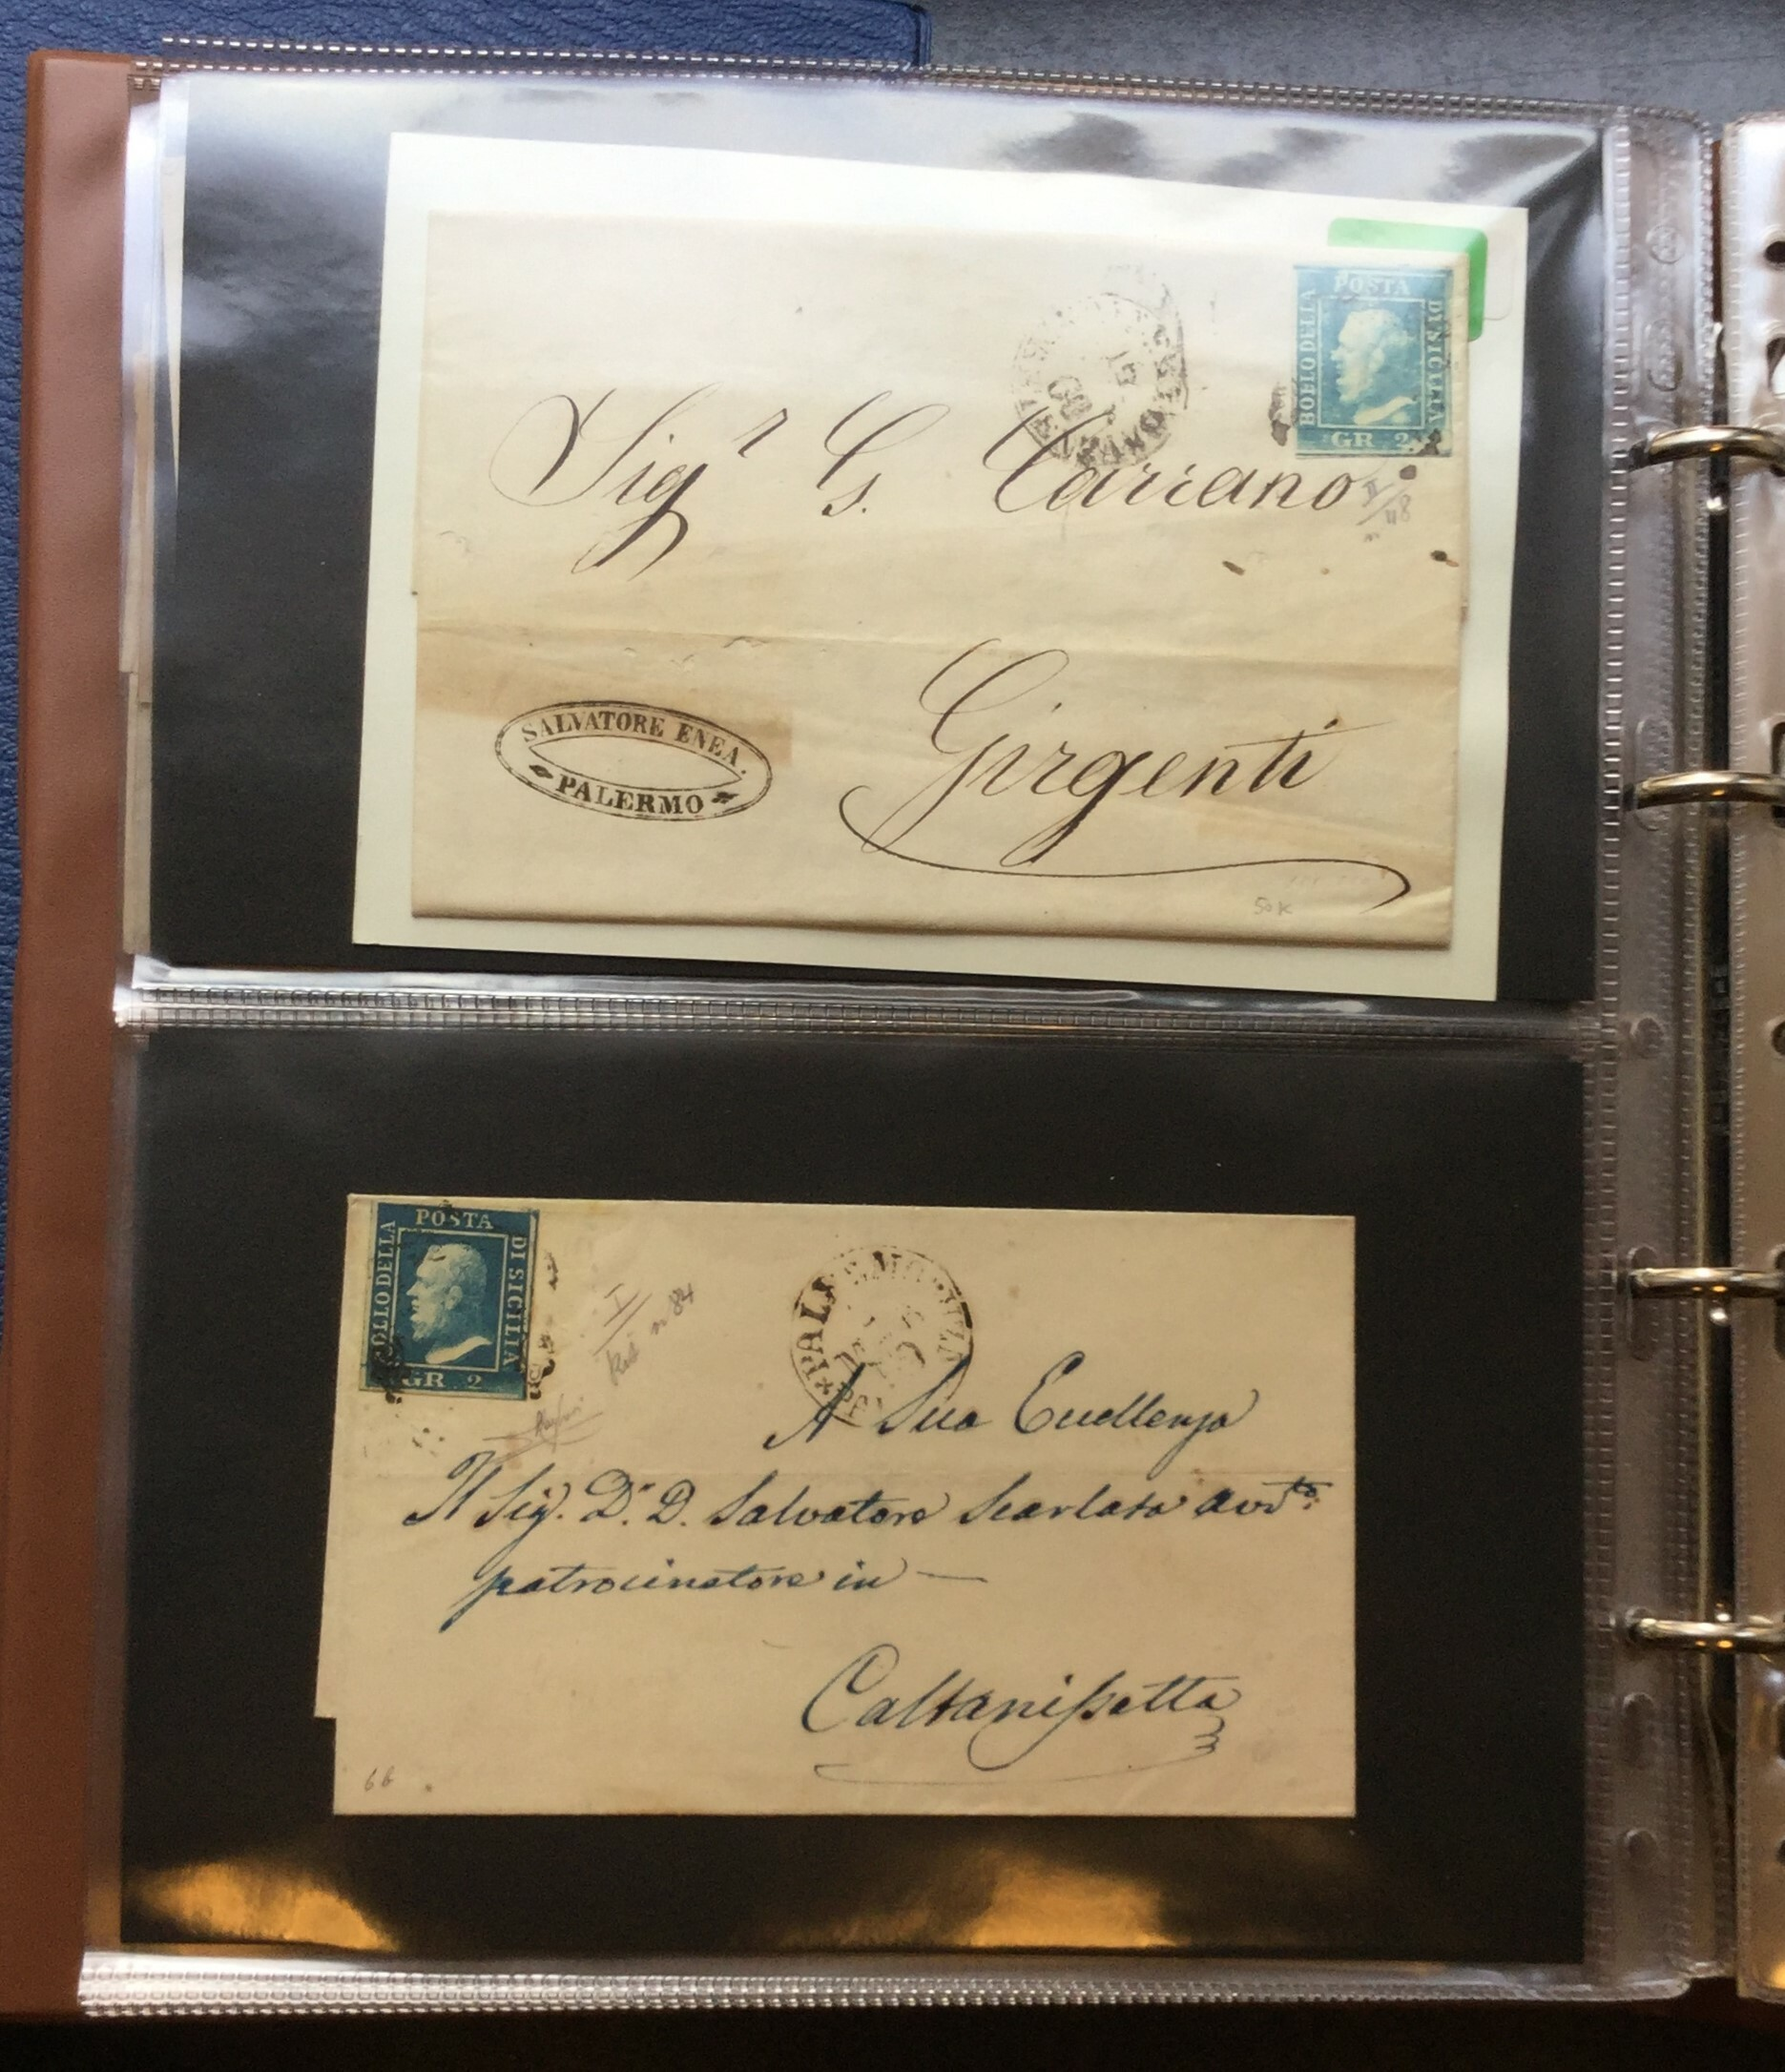 Lot 2507 - ANTICHI STATI, REGNO D'ITALIA Lots & Collections -  Ponte Auction House Stamps Auction 505